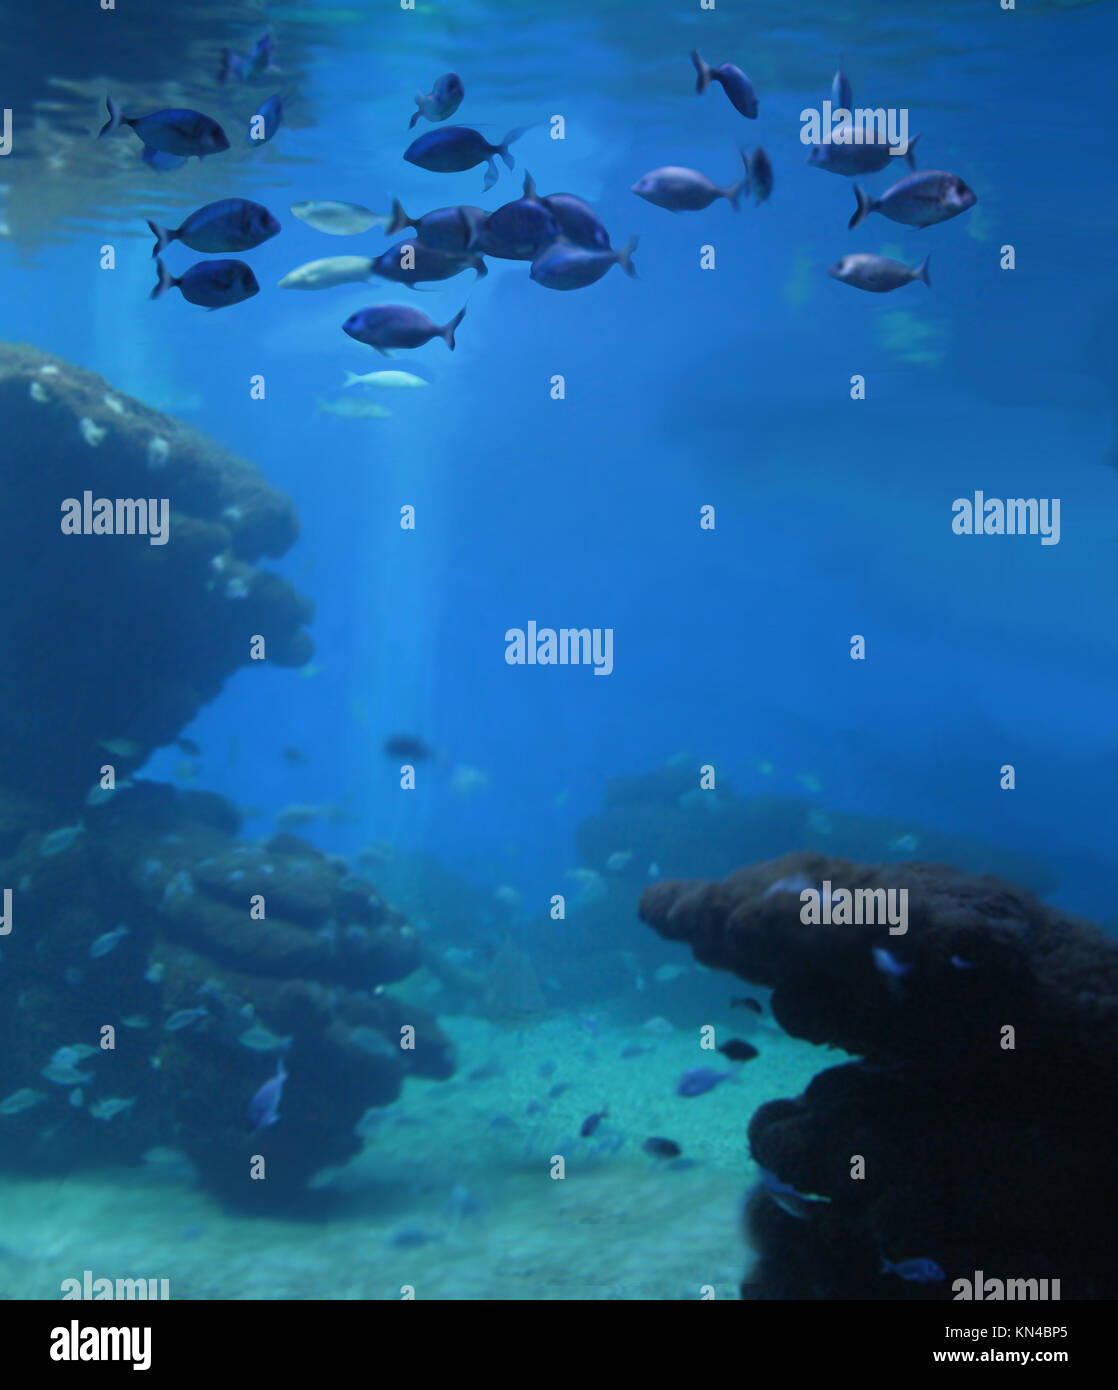 Aquarium with school of fish, digital painting. - Stock Image